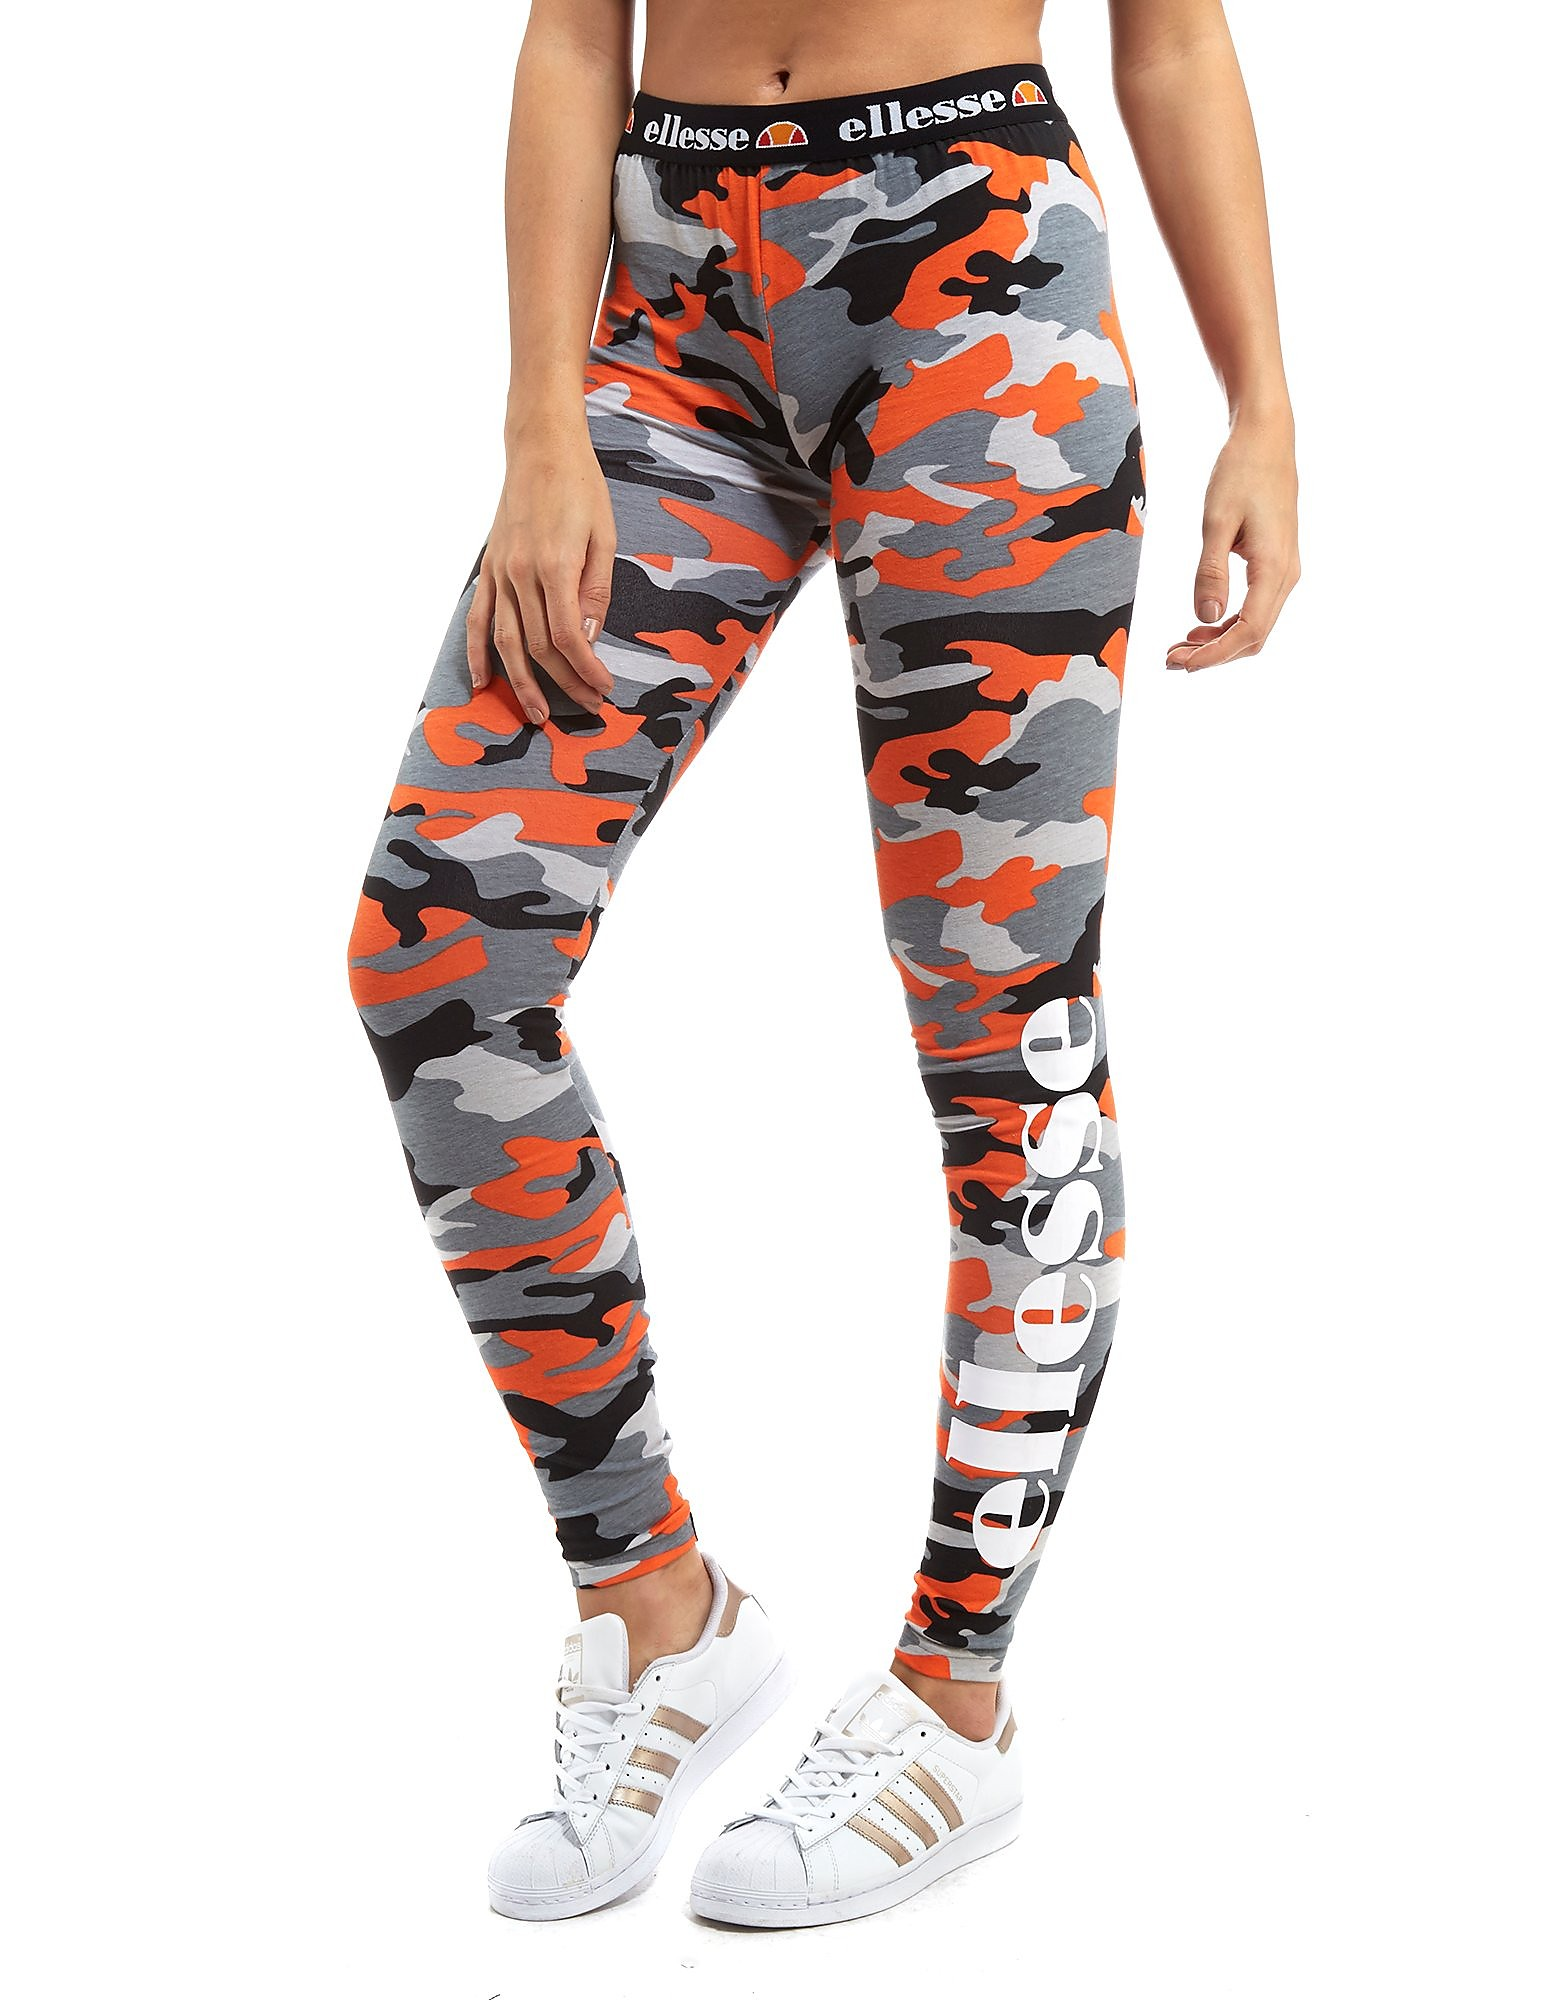 Ellesse Tape Waist Leggings